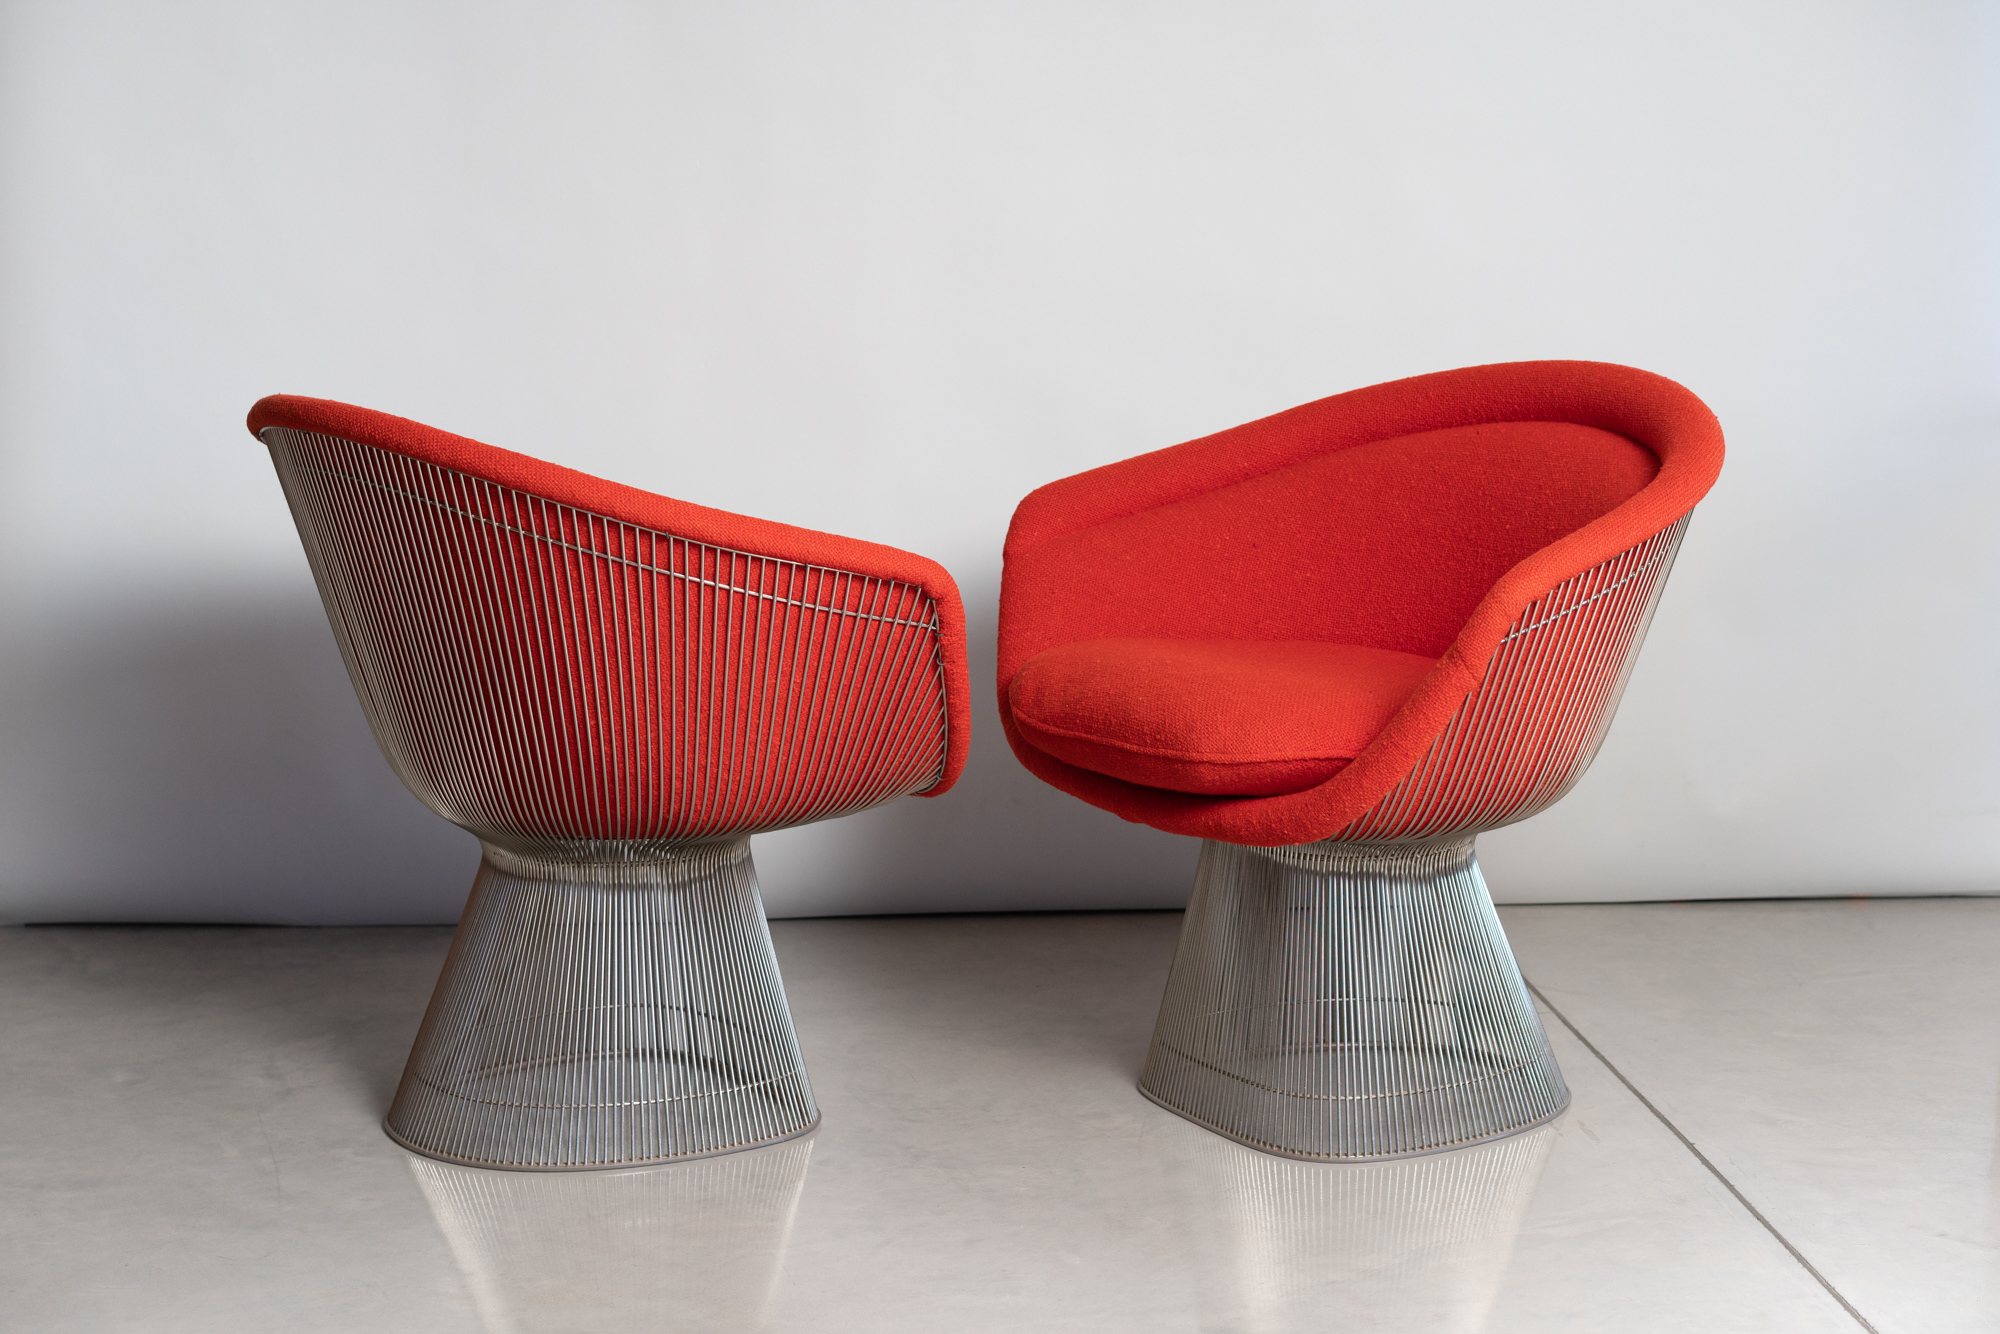 Knoll Platner Chairs - $5400